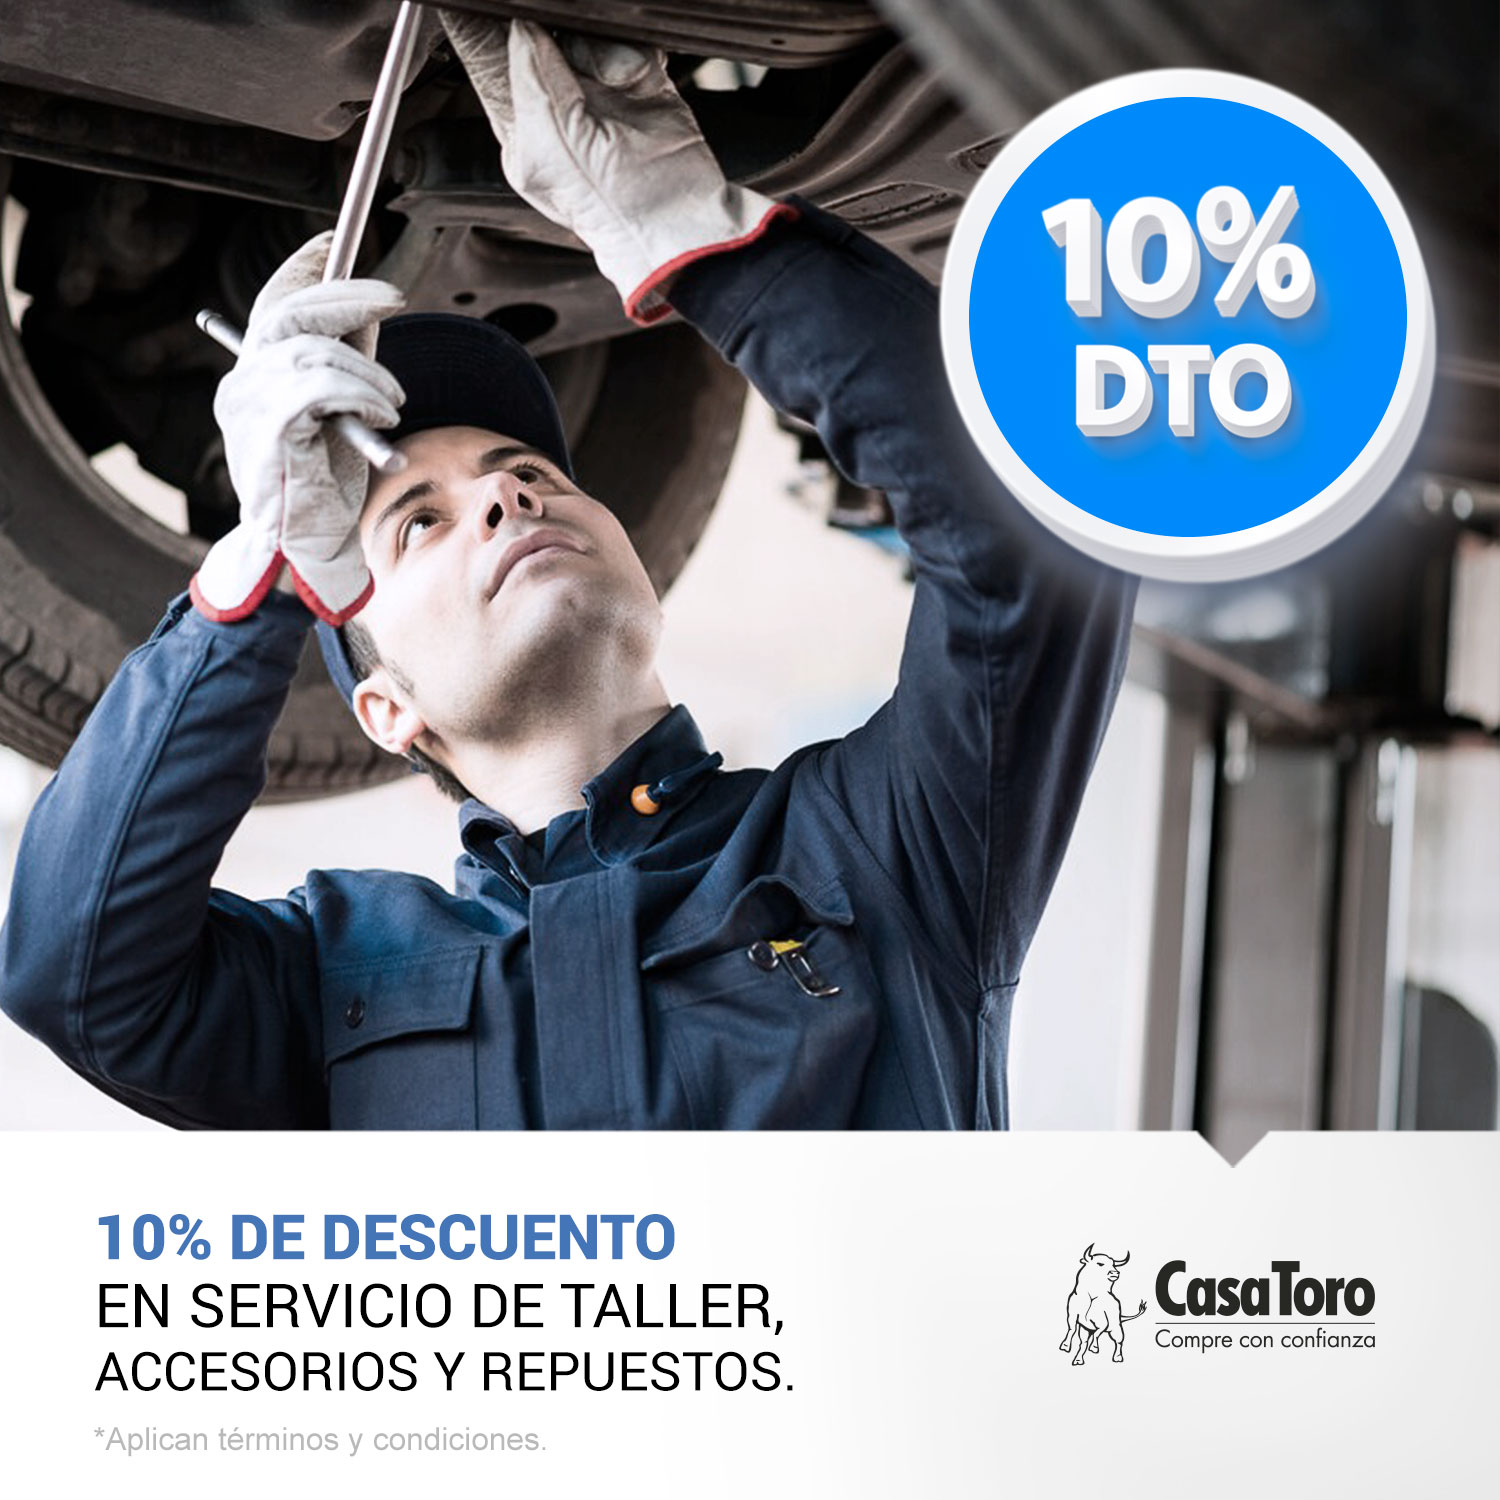 Beneficios exclusivos en talleres CasaToro.